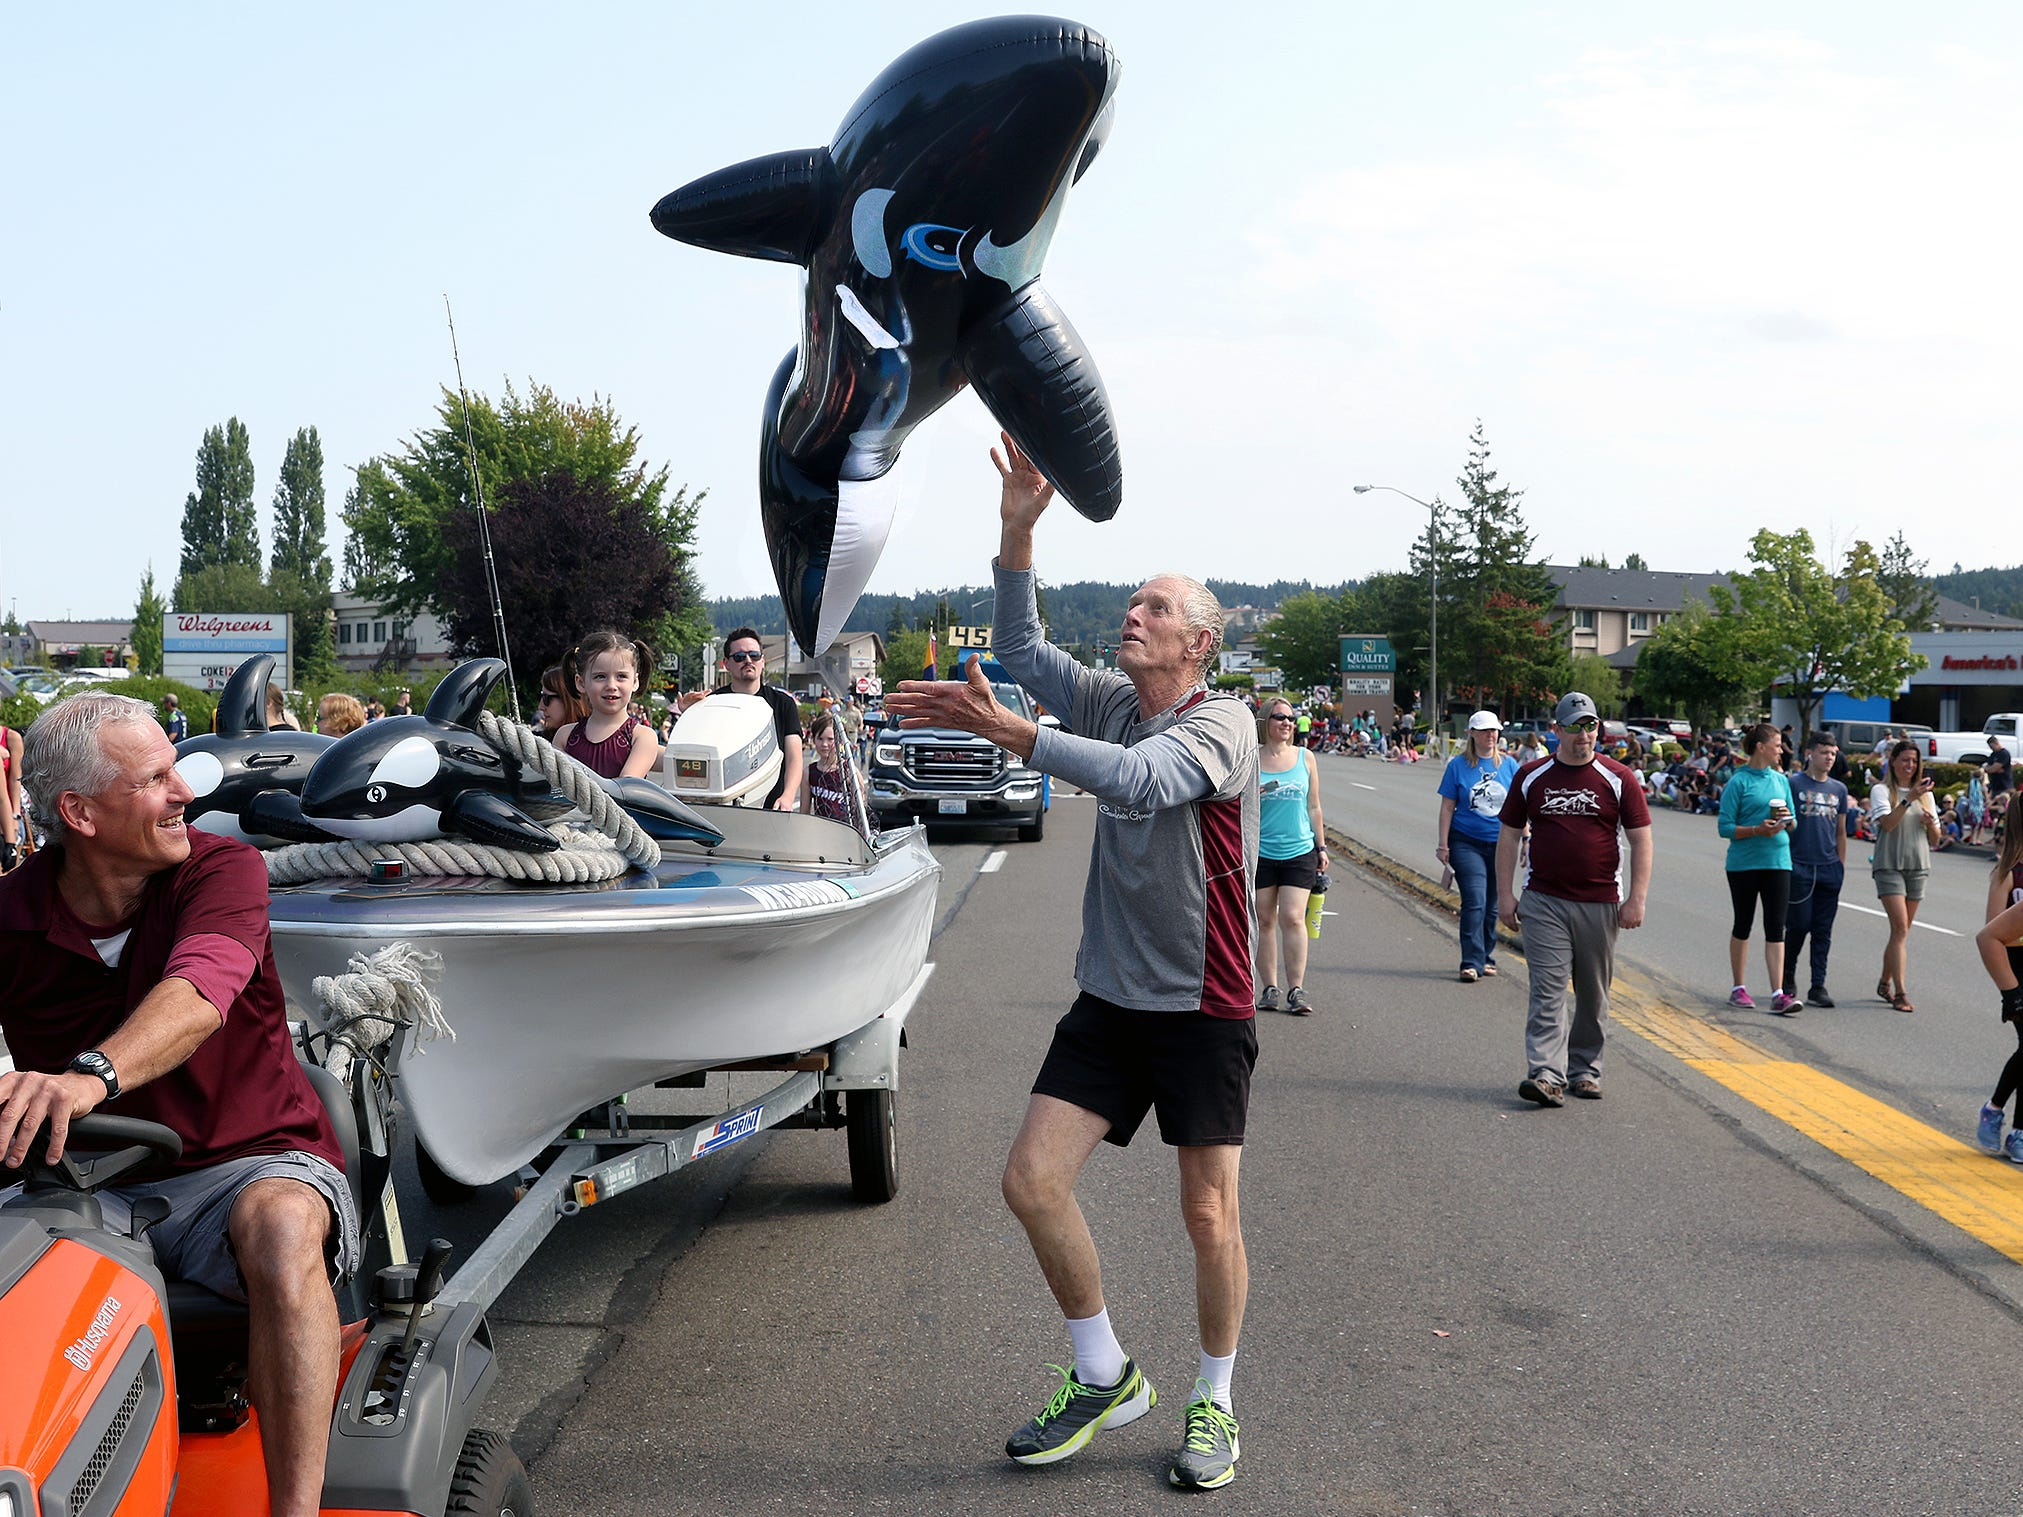 Coach Bob Cummins of the Olympic Gymnastics Center in Silverdale tosses an orca whale while taking part in the Whaling Days Festival Parade along Silverdale Way in Silverdale, WA on Saturday, July 28, 2018.